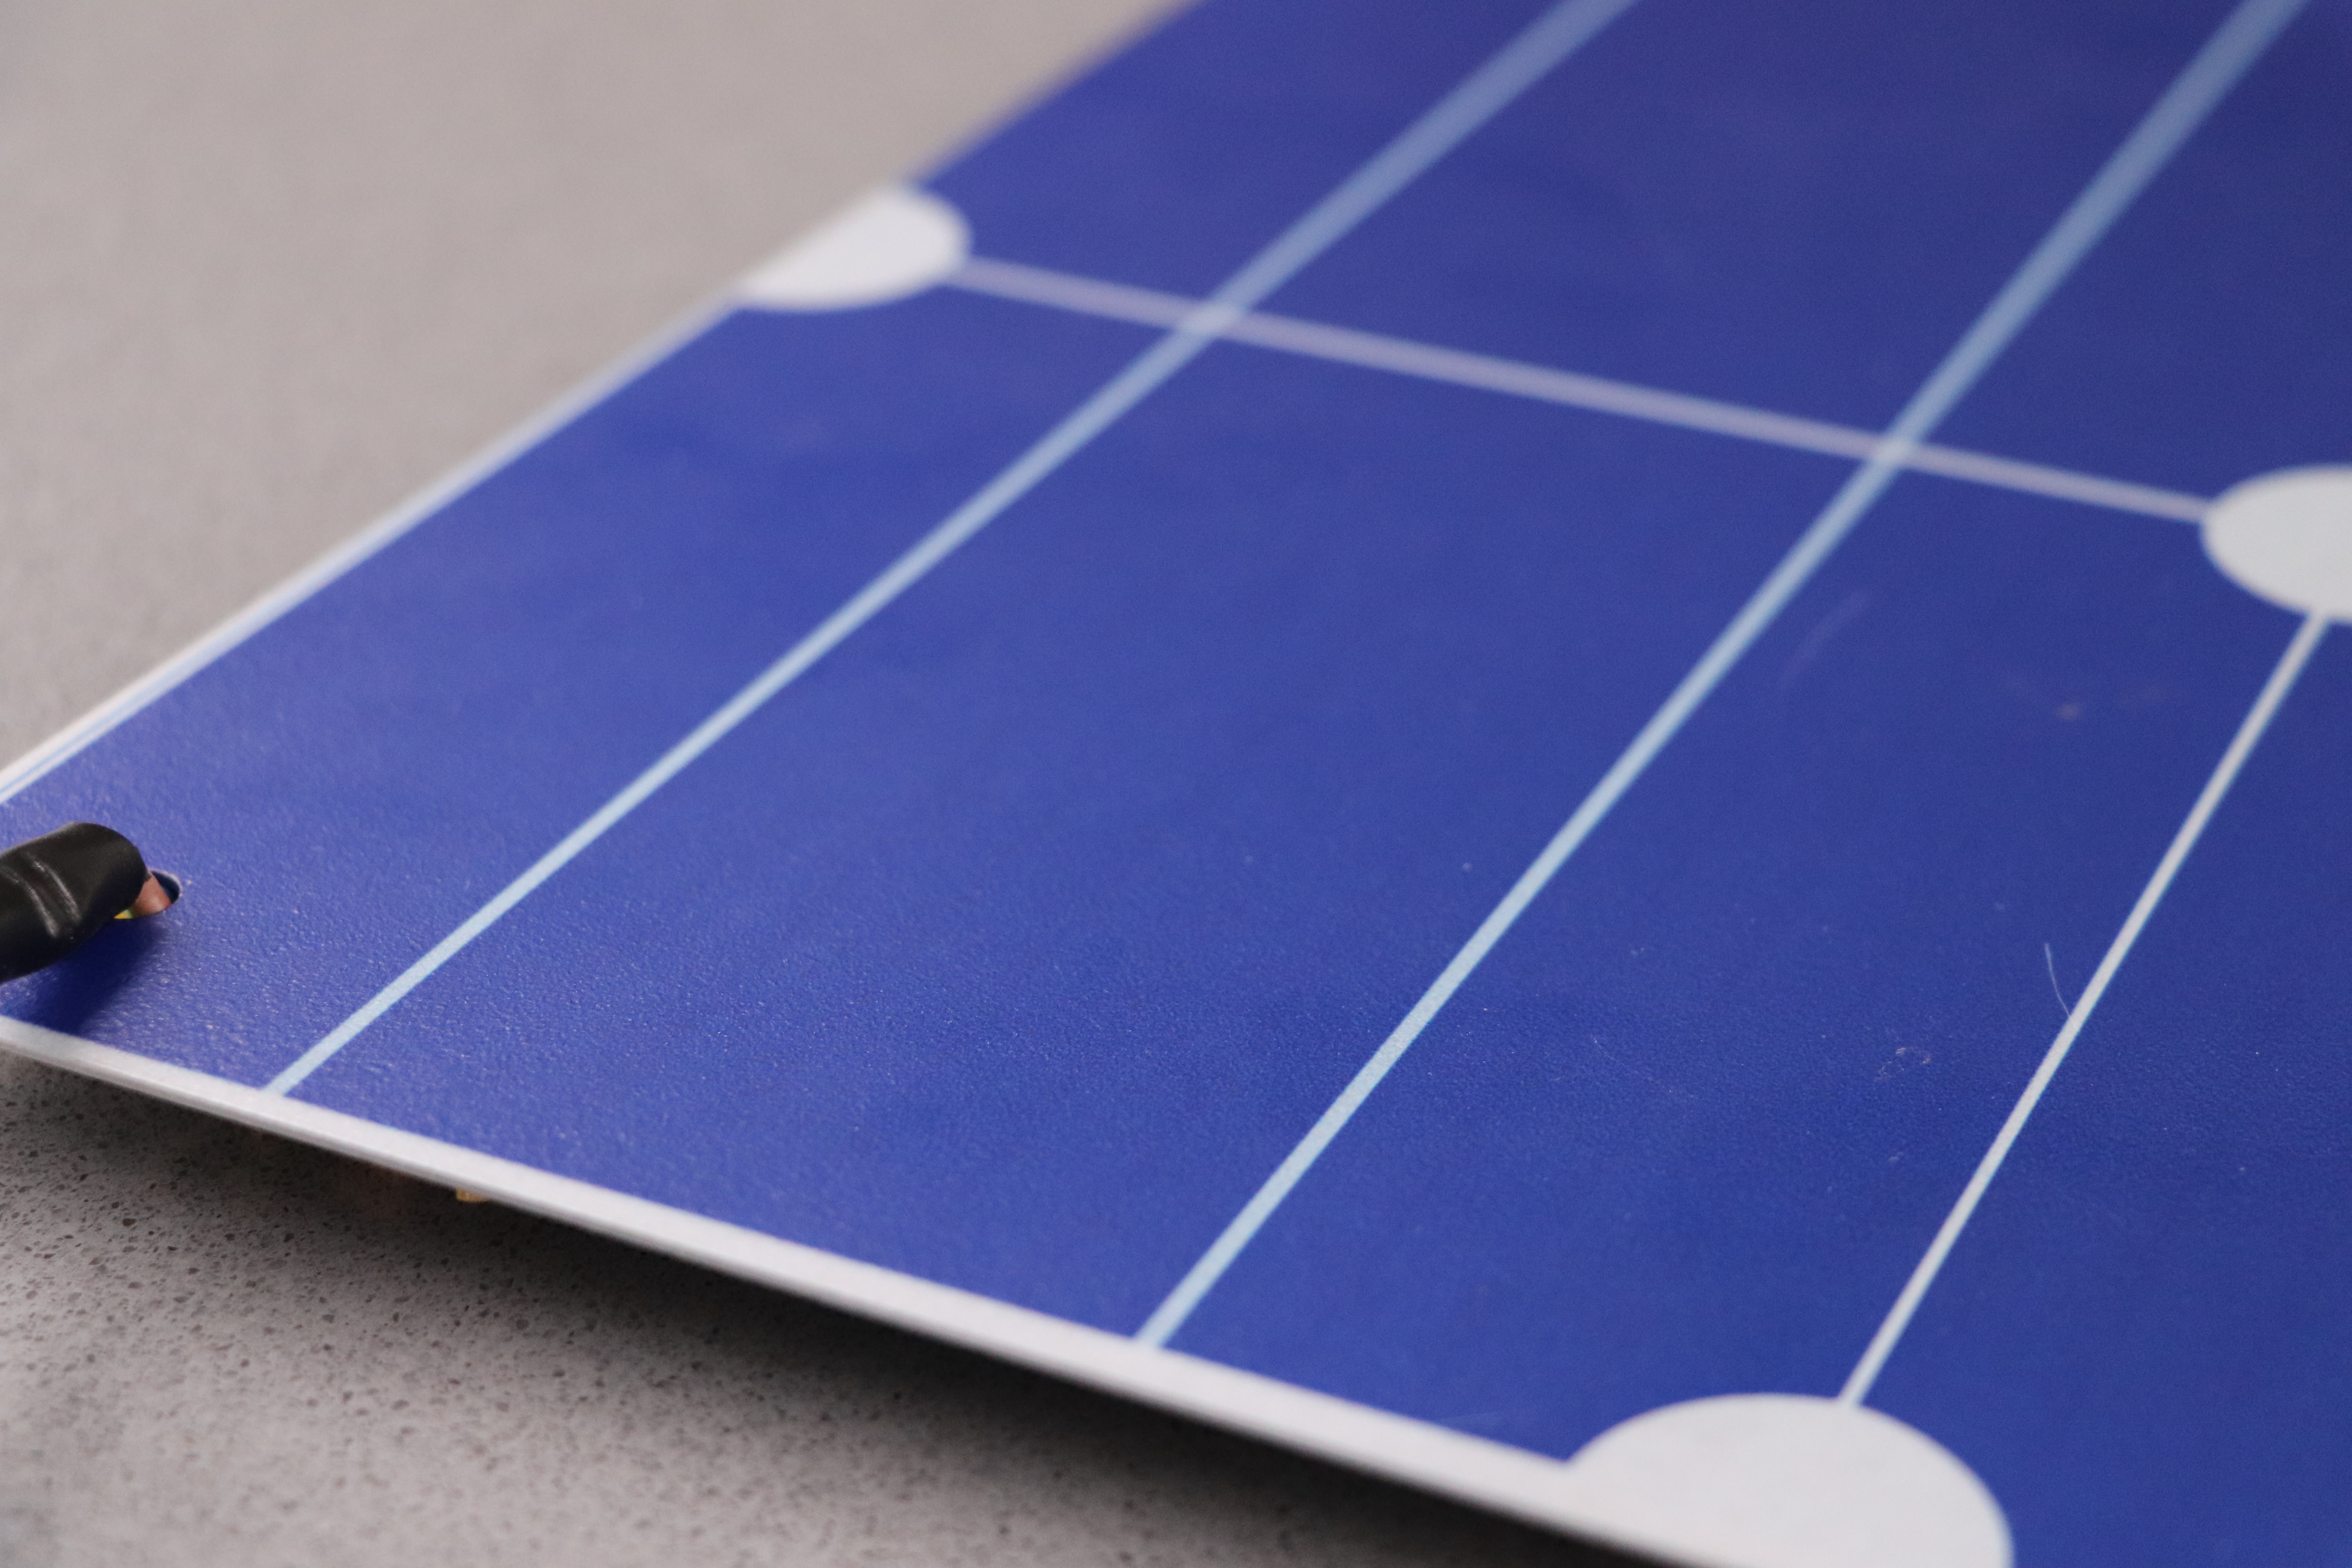 Introducing the Photovoltaic Ray and Natural Carbon Sink